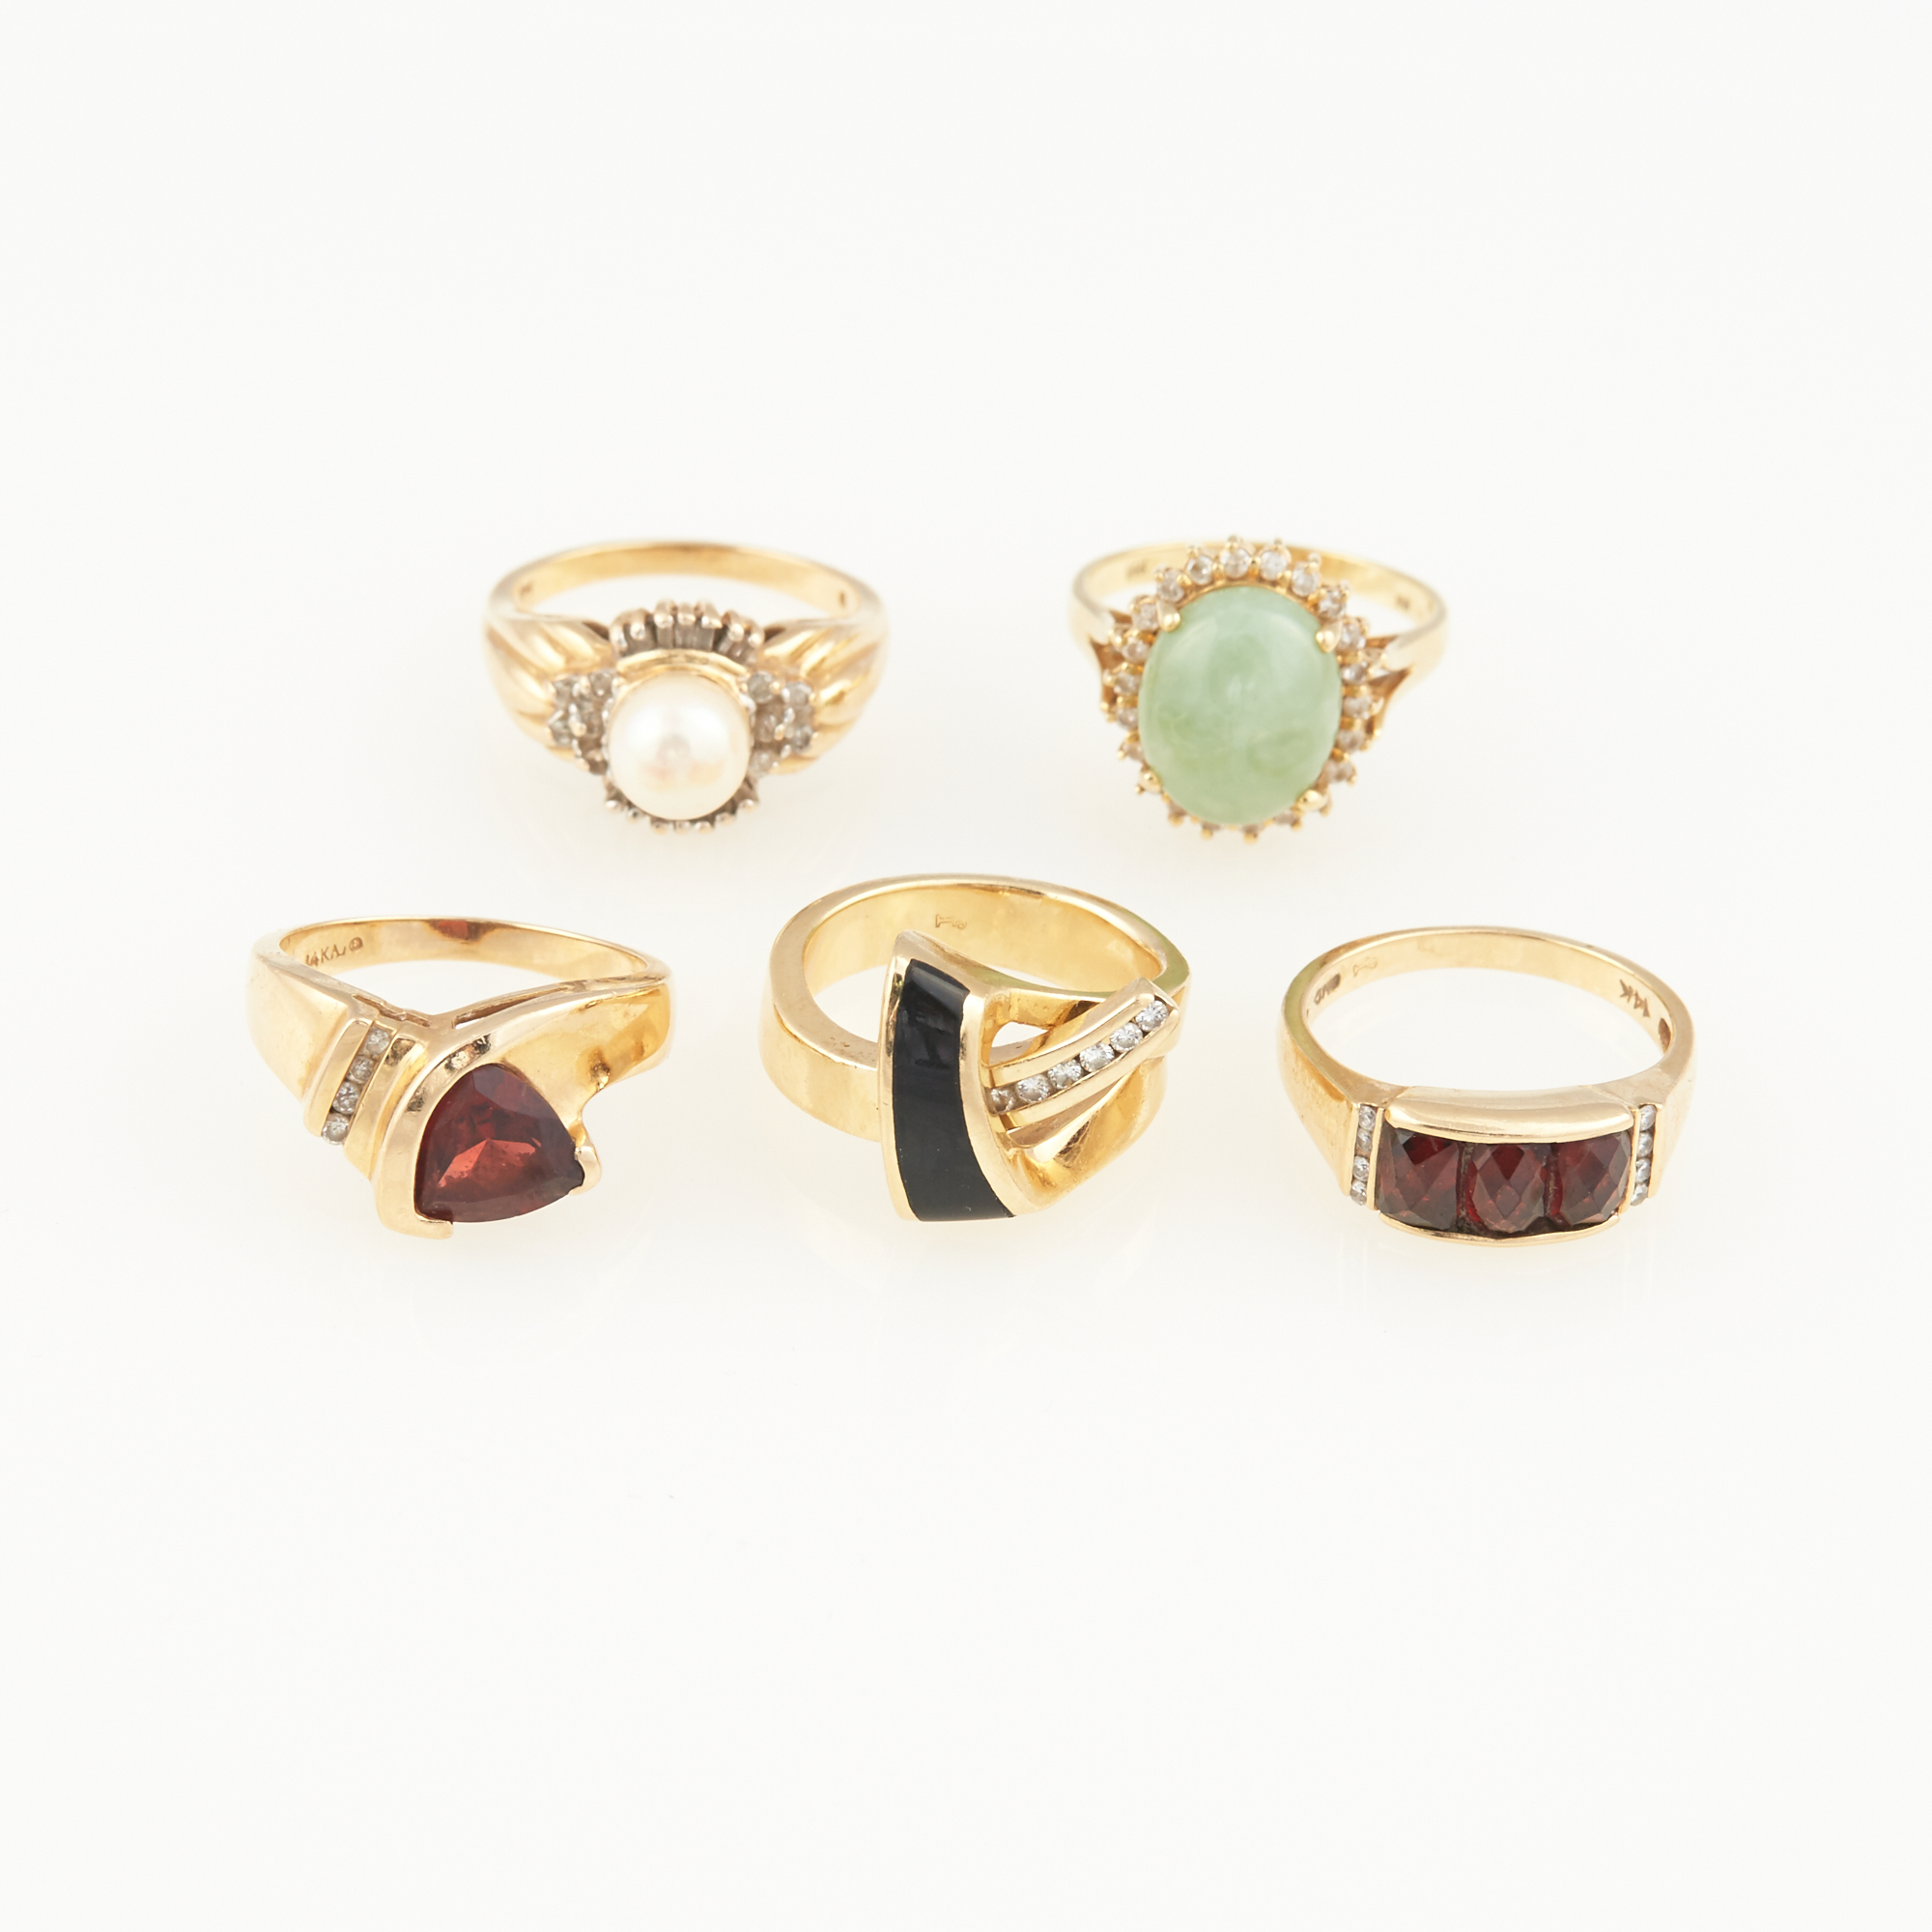 Lot image - Five Diamond, Stone and Bead Rings, 14K 17 dwt. all